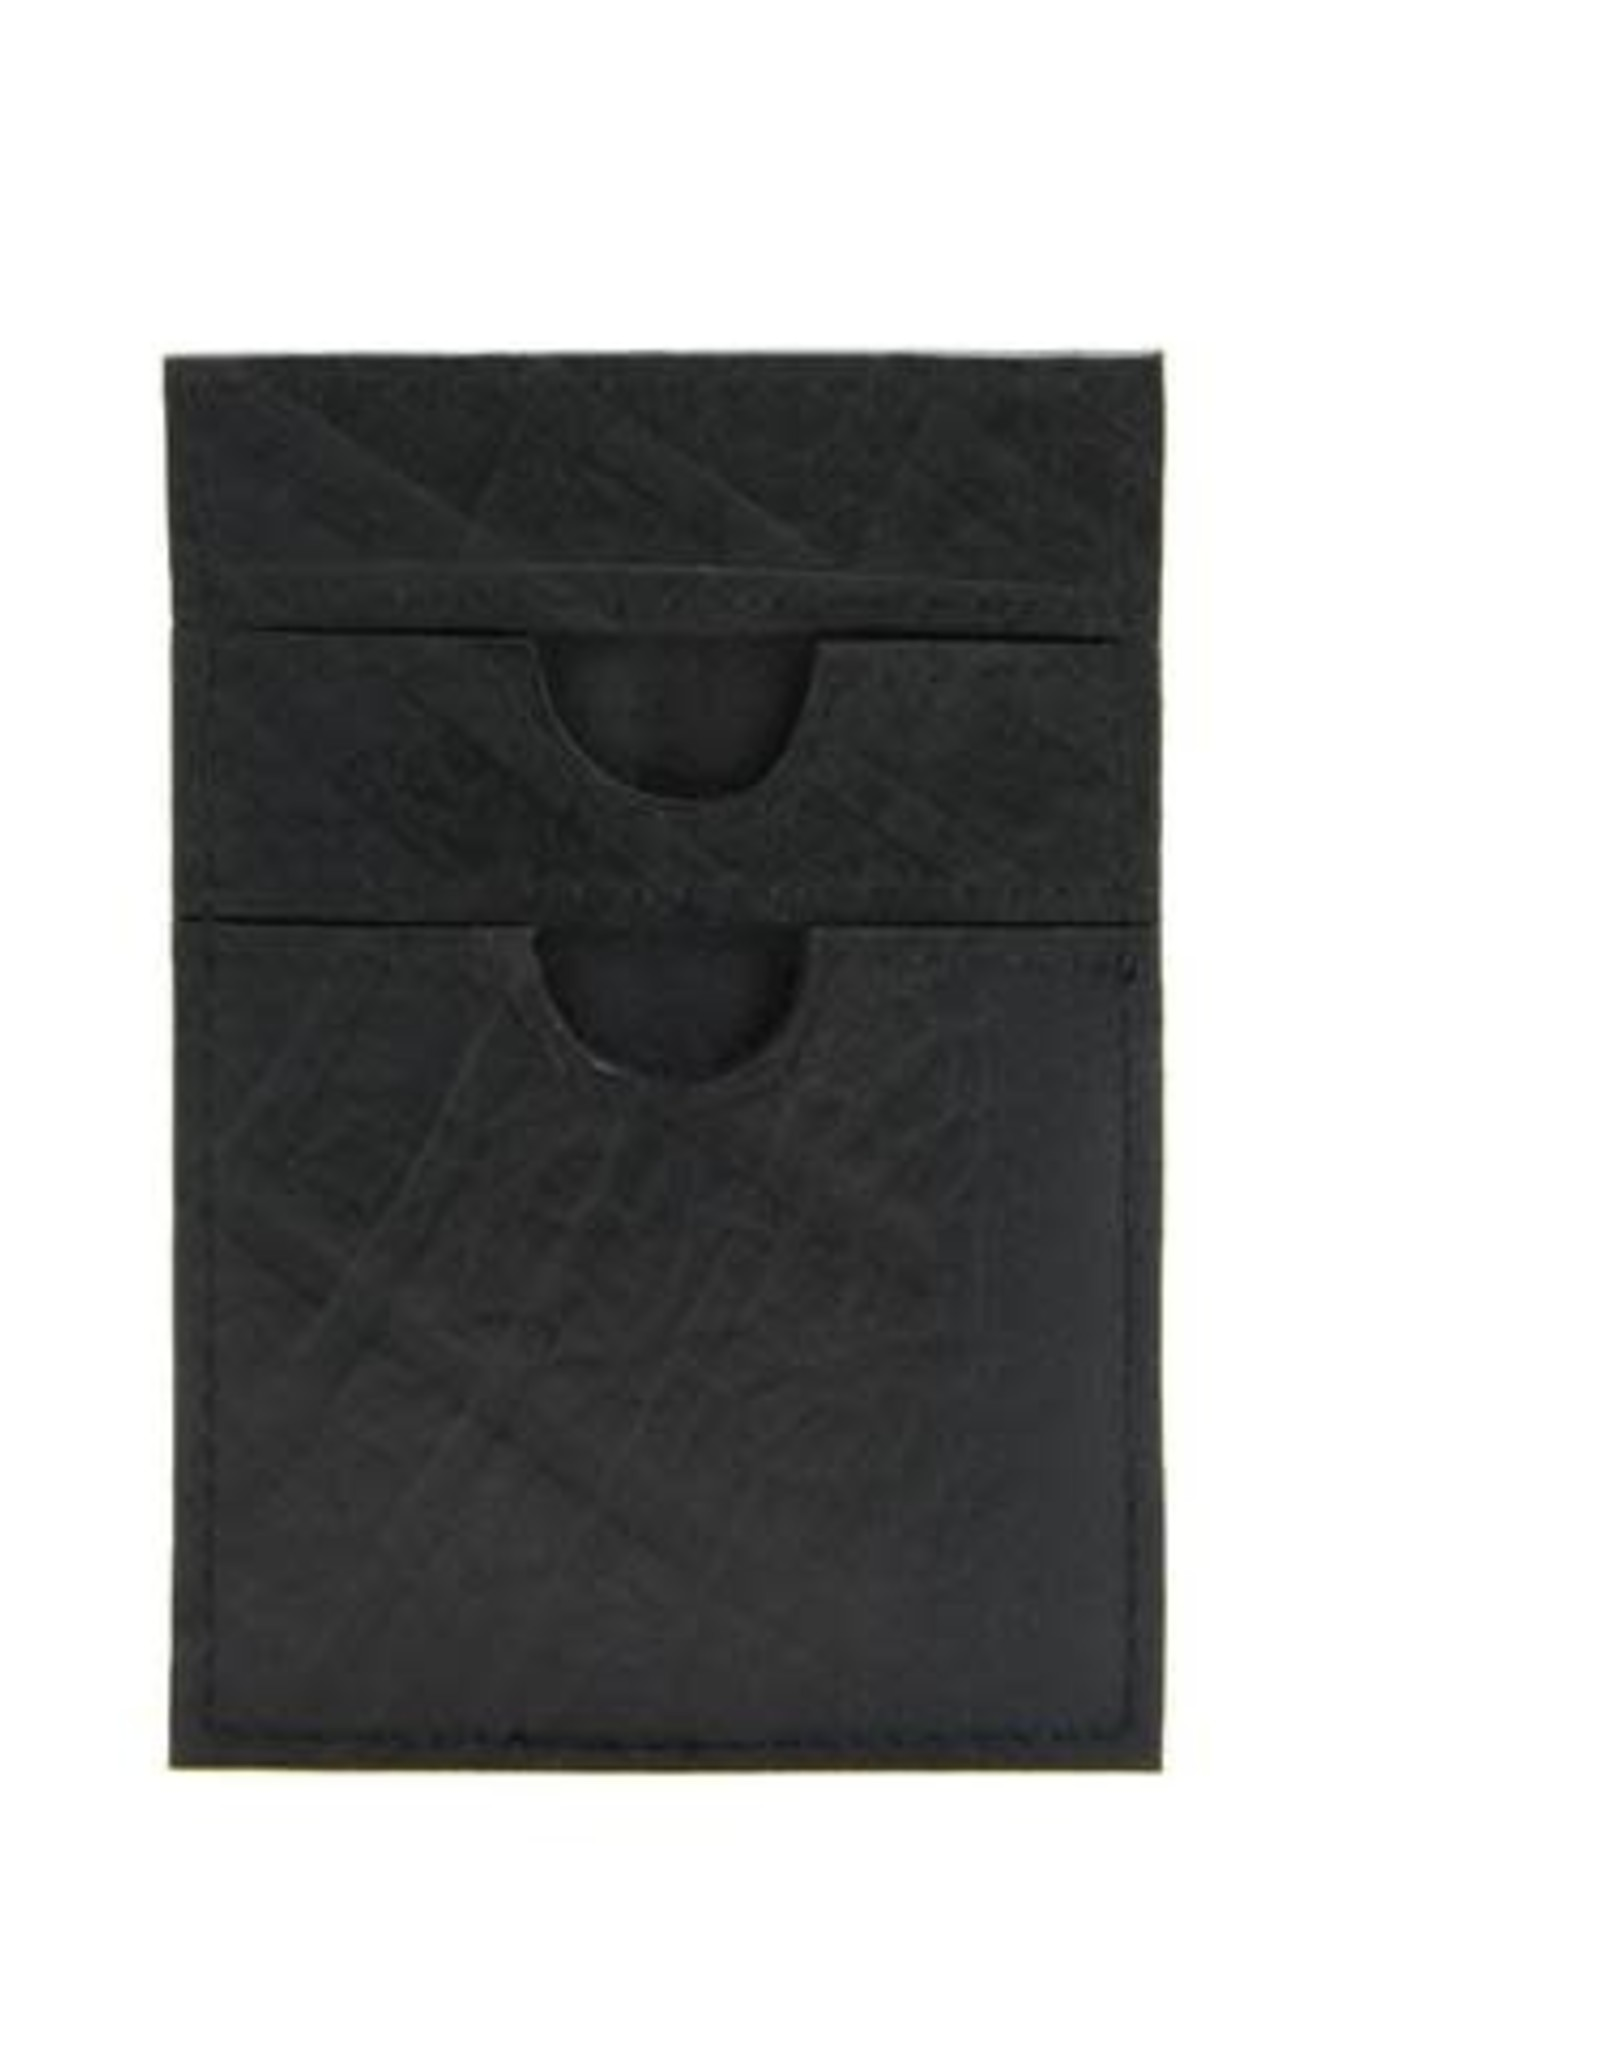 Recycled Tire Card Holder, Nepal